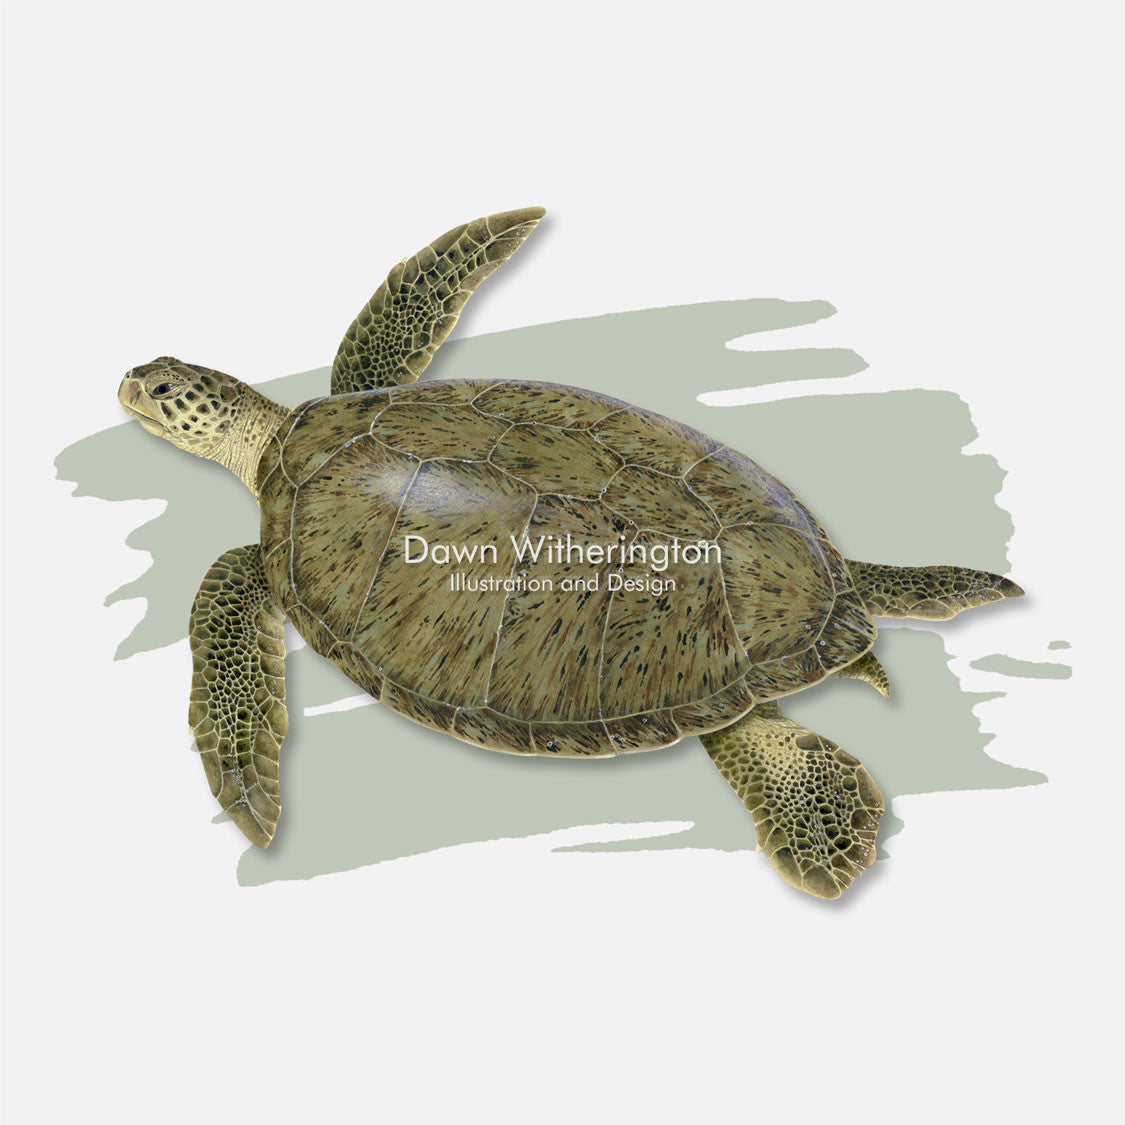 This beautiful illustration of a green turtle, Chelonia midas, is over a swash graphic.